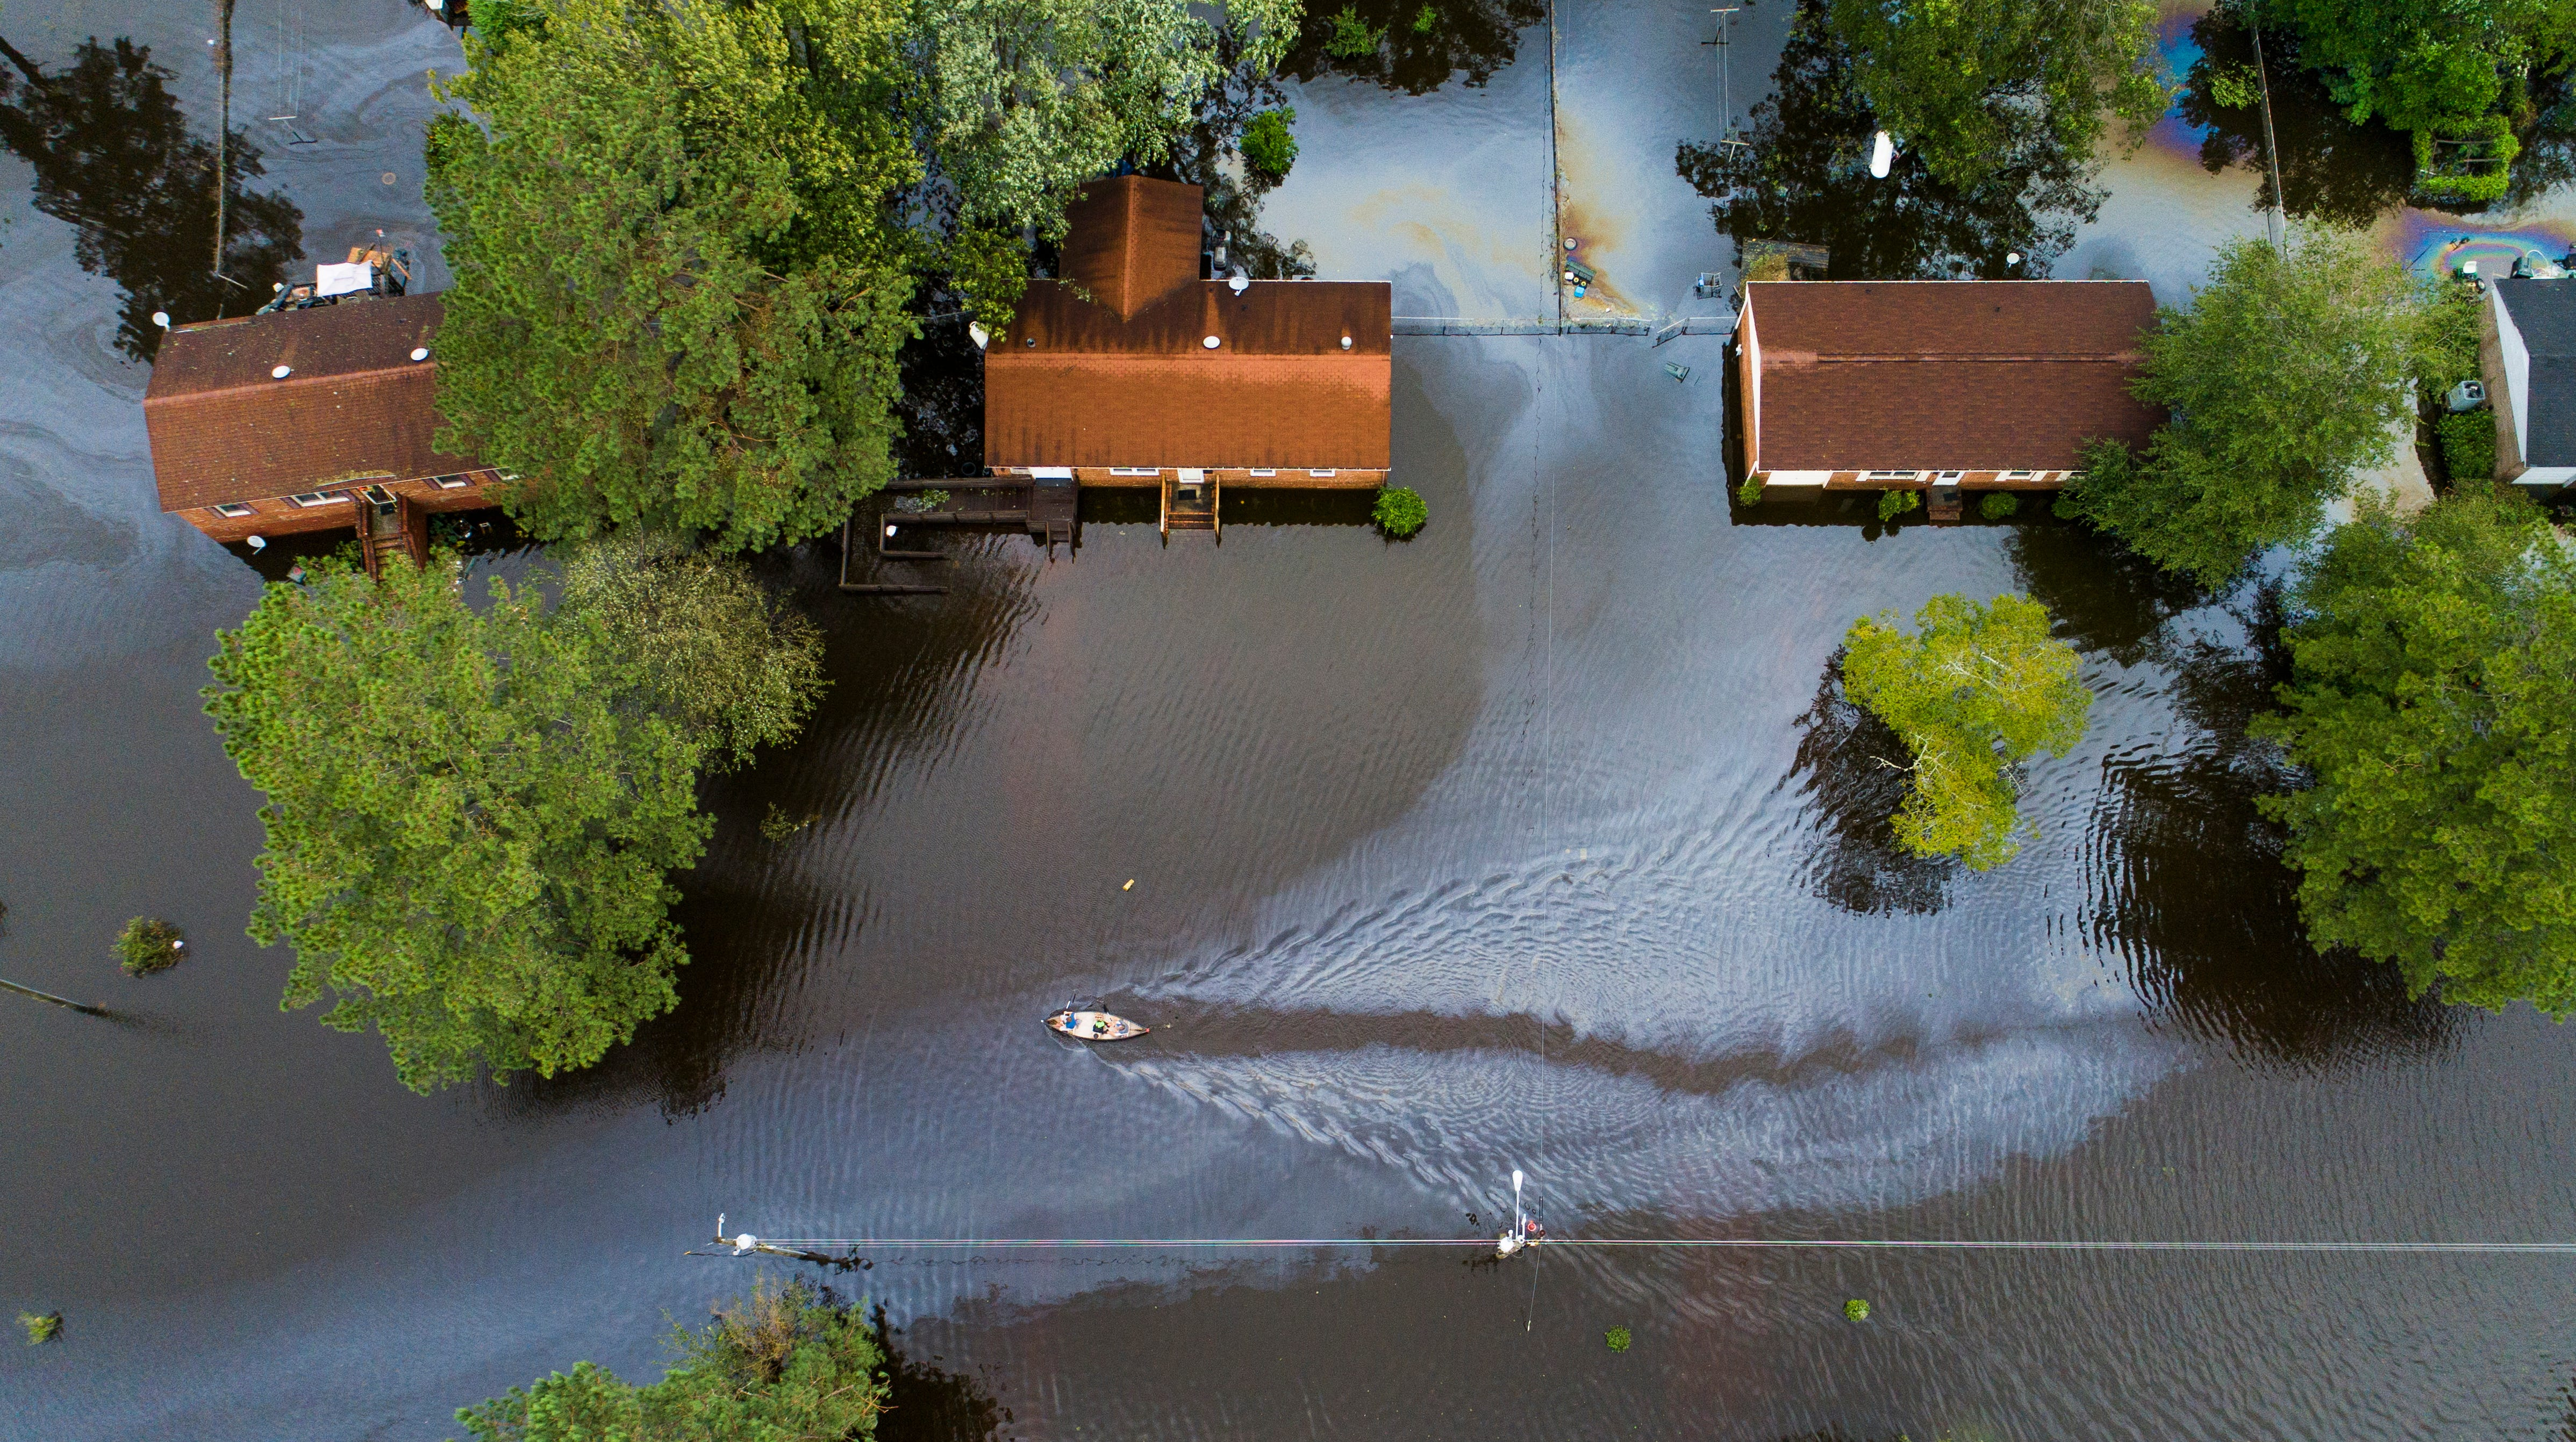 Hurricane Florence Flood Insurance Homeowners Face Financial Risk